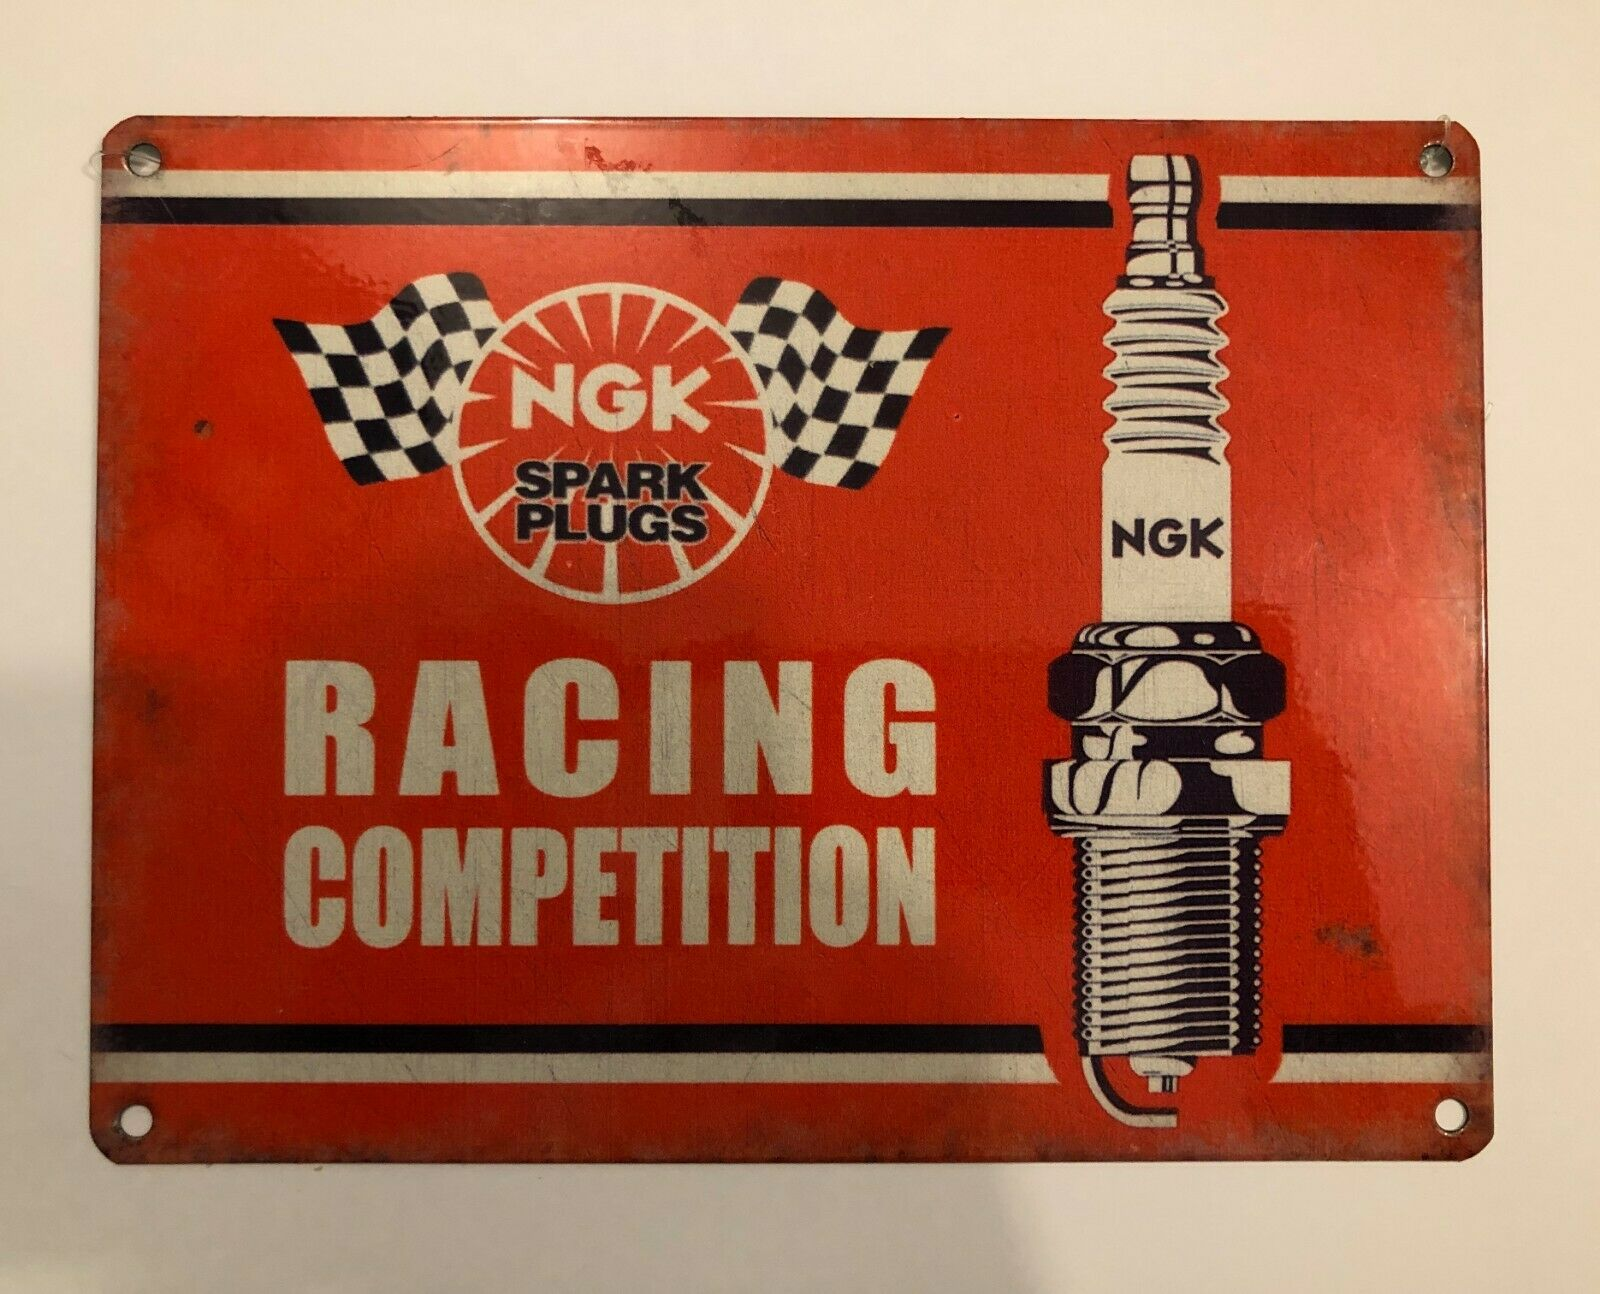 NGK Racing Competition Spark Plugs